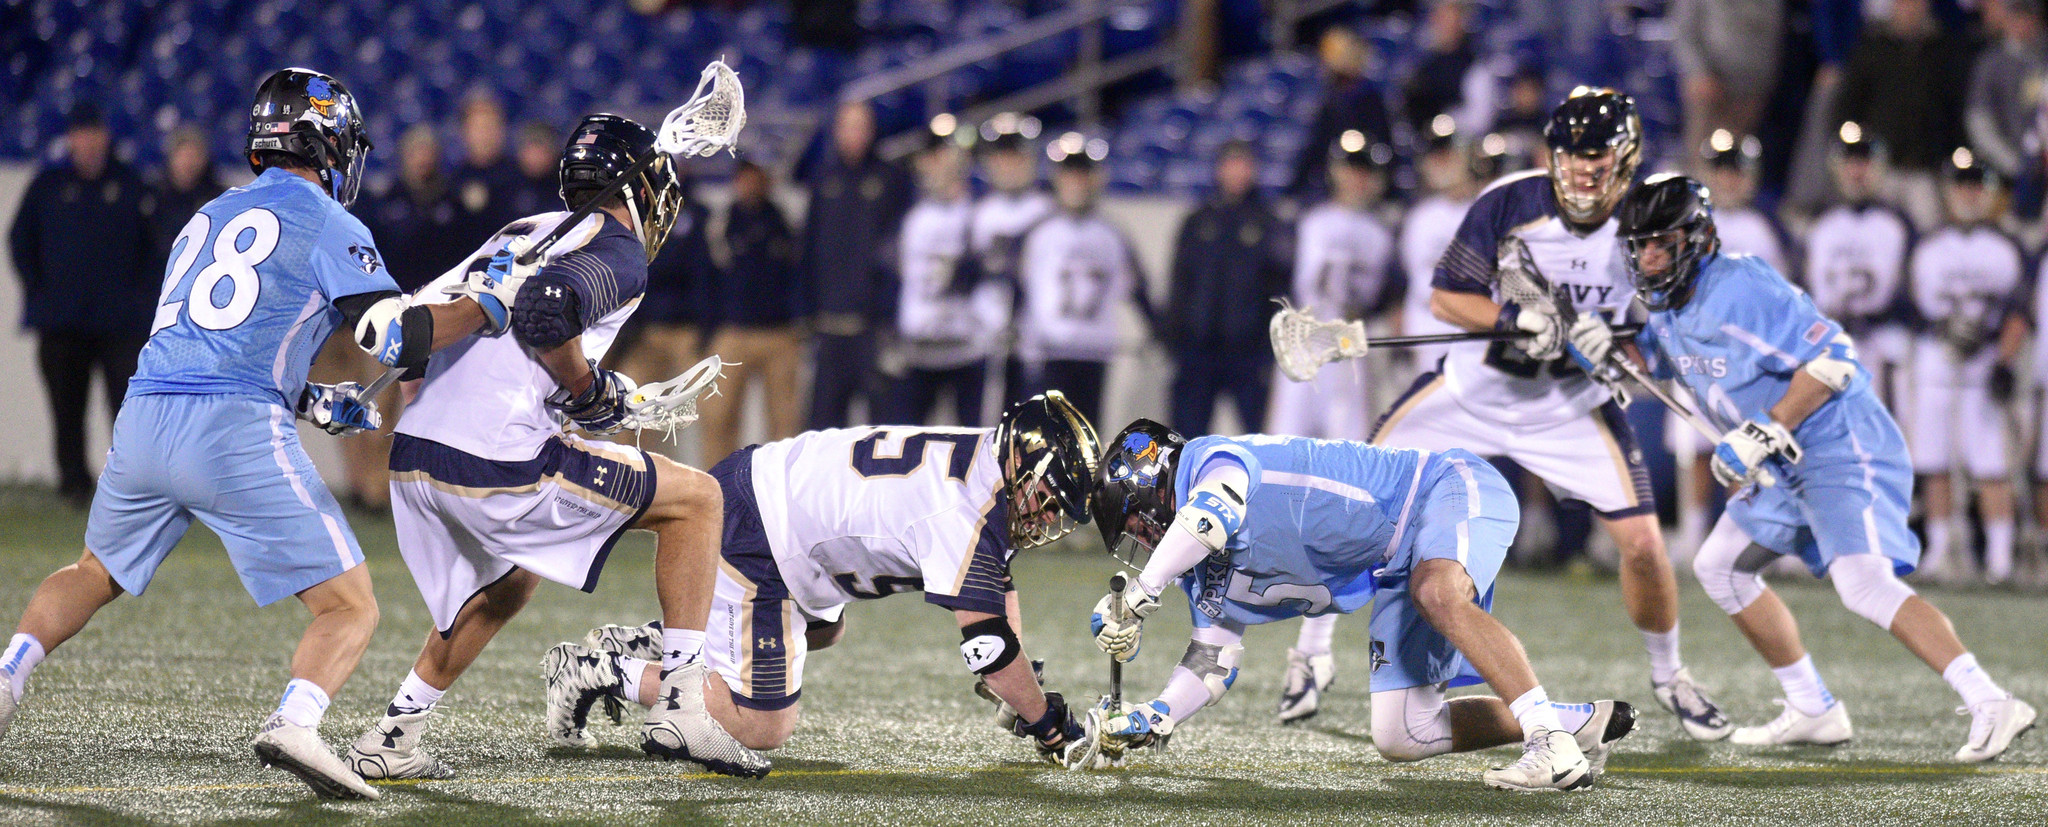 Brady Dove's one-game hiccup on faceoffs hasn't changed Navy coach Rick Sowell's opinion